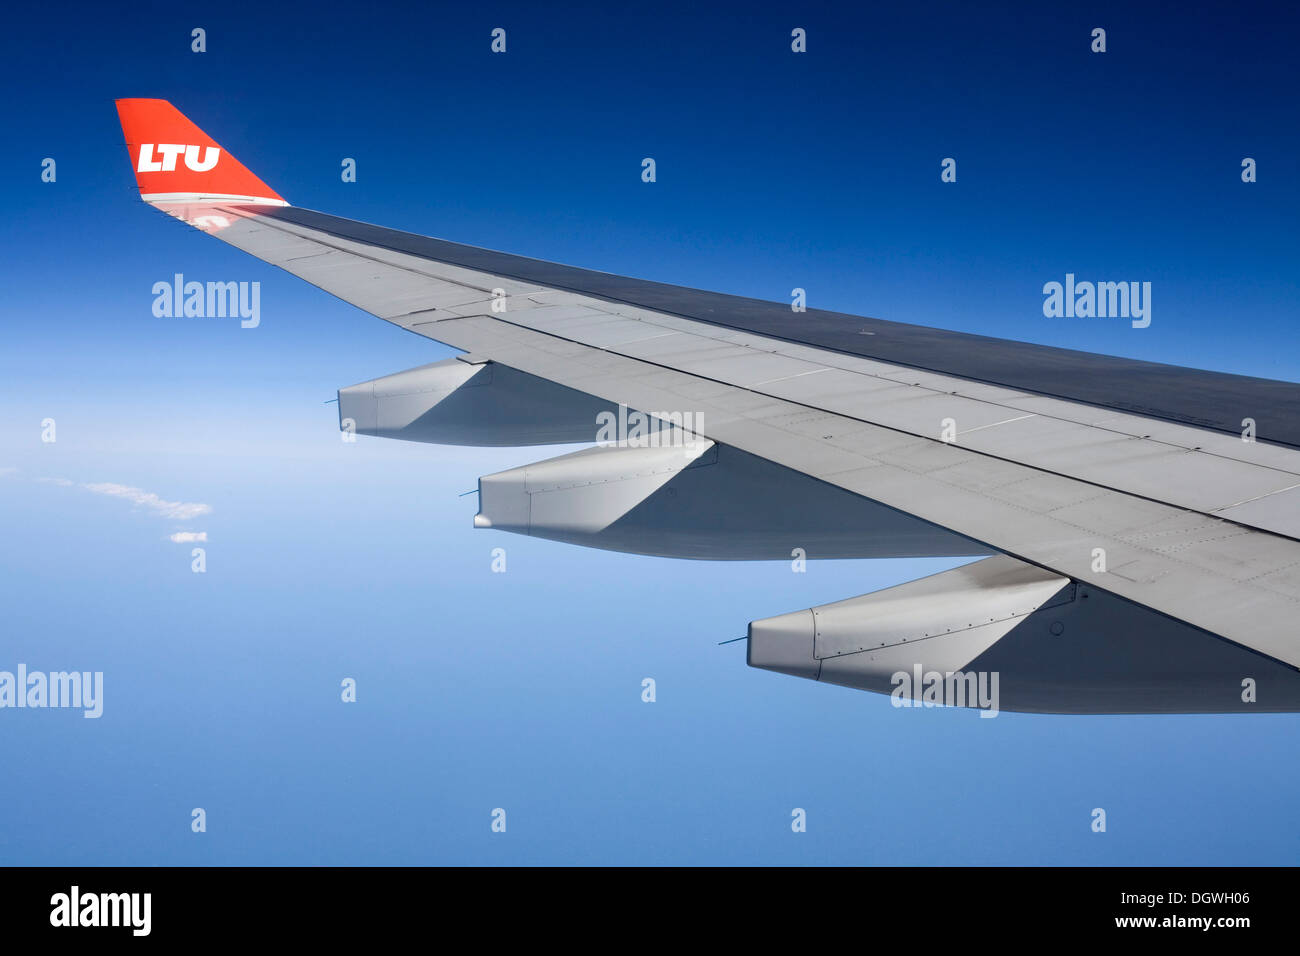 Wing of an Airbus aircraft in flight, with winglet and the logo of airline LTU, over the Atlantic Ocean - Stock Image